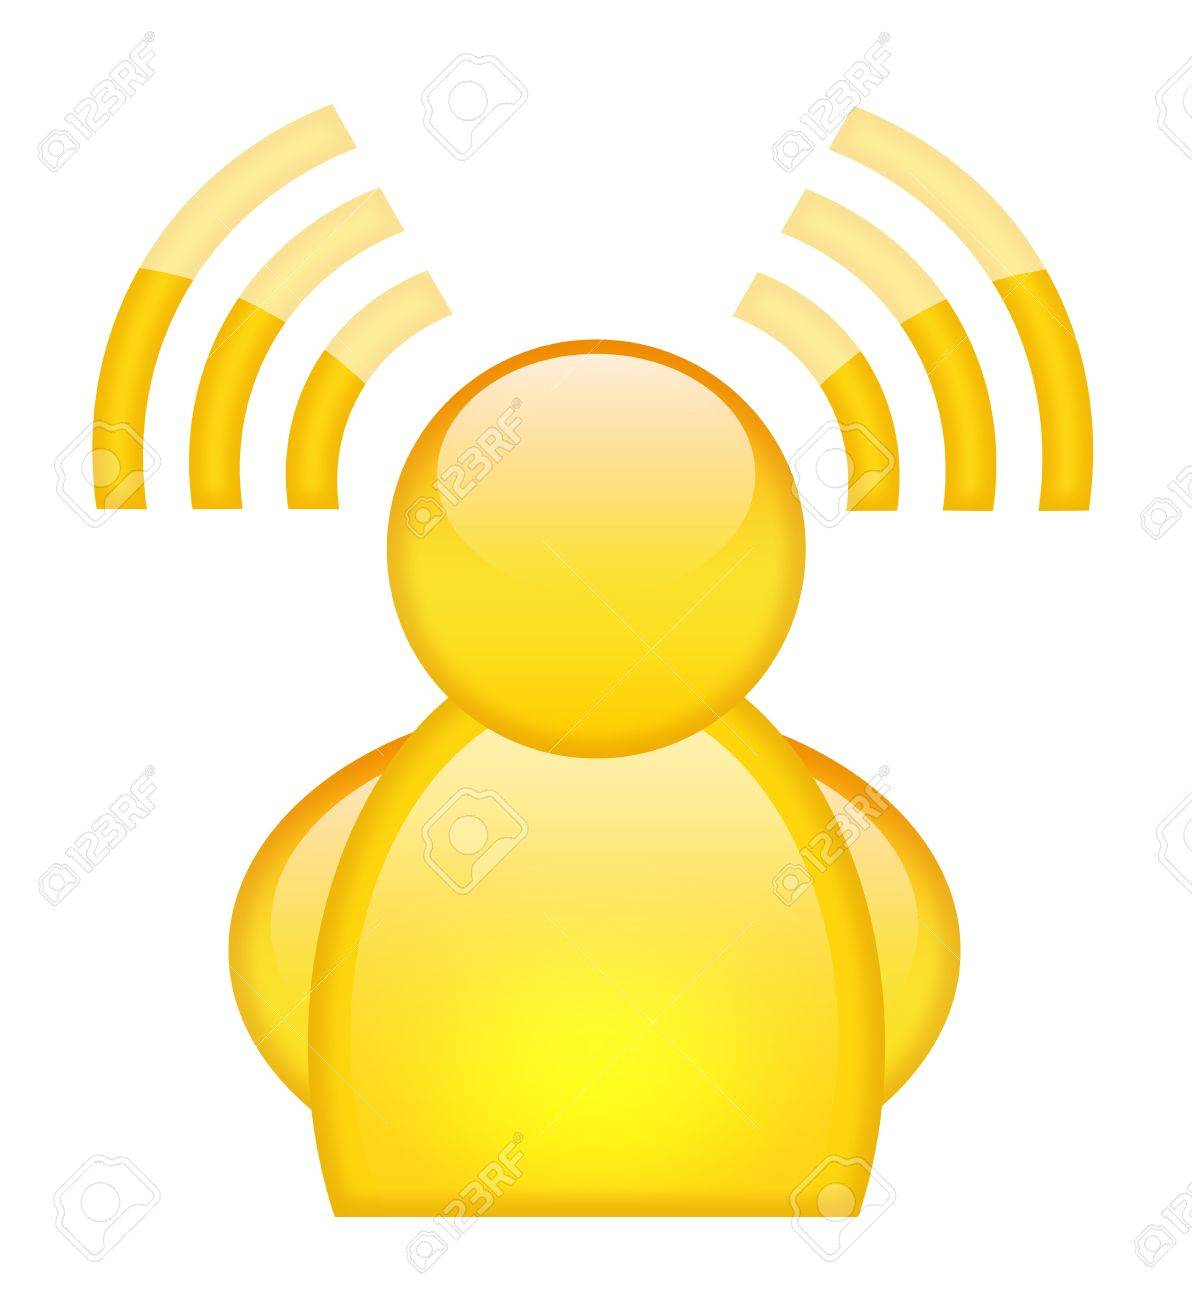 Rss user icon Stock Photo - 9986630